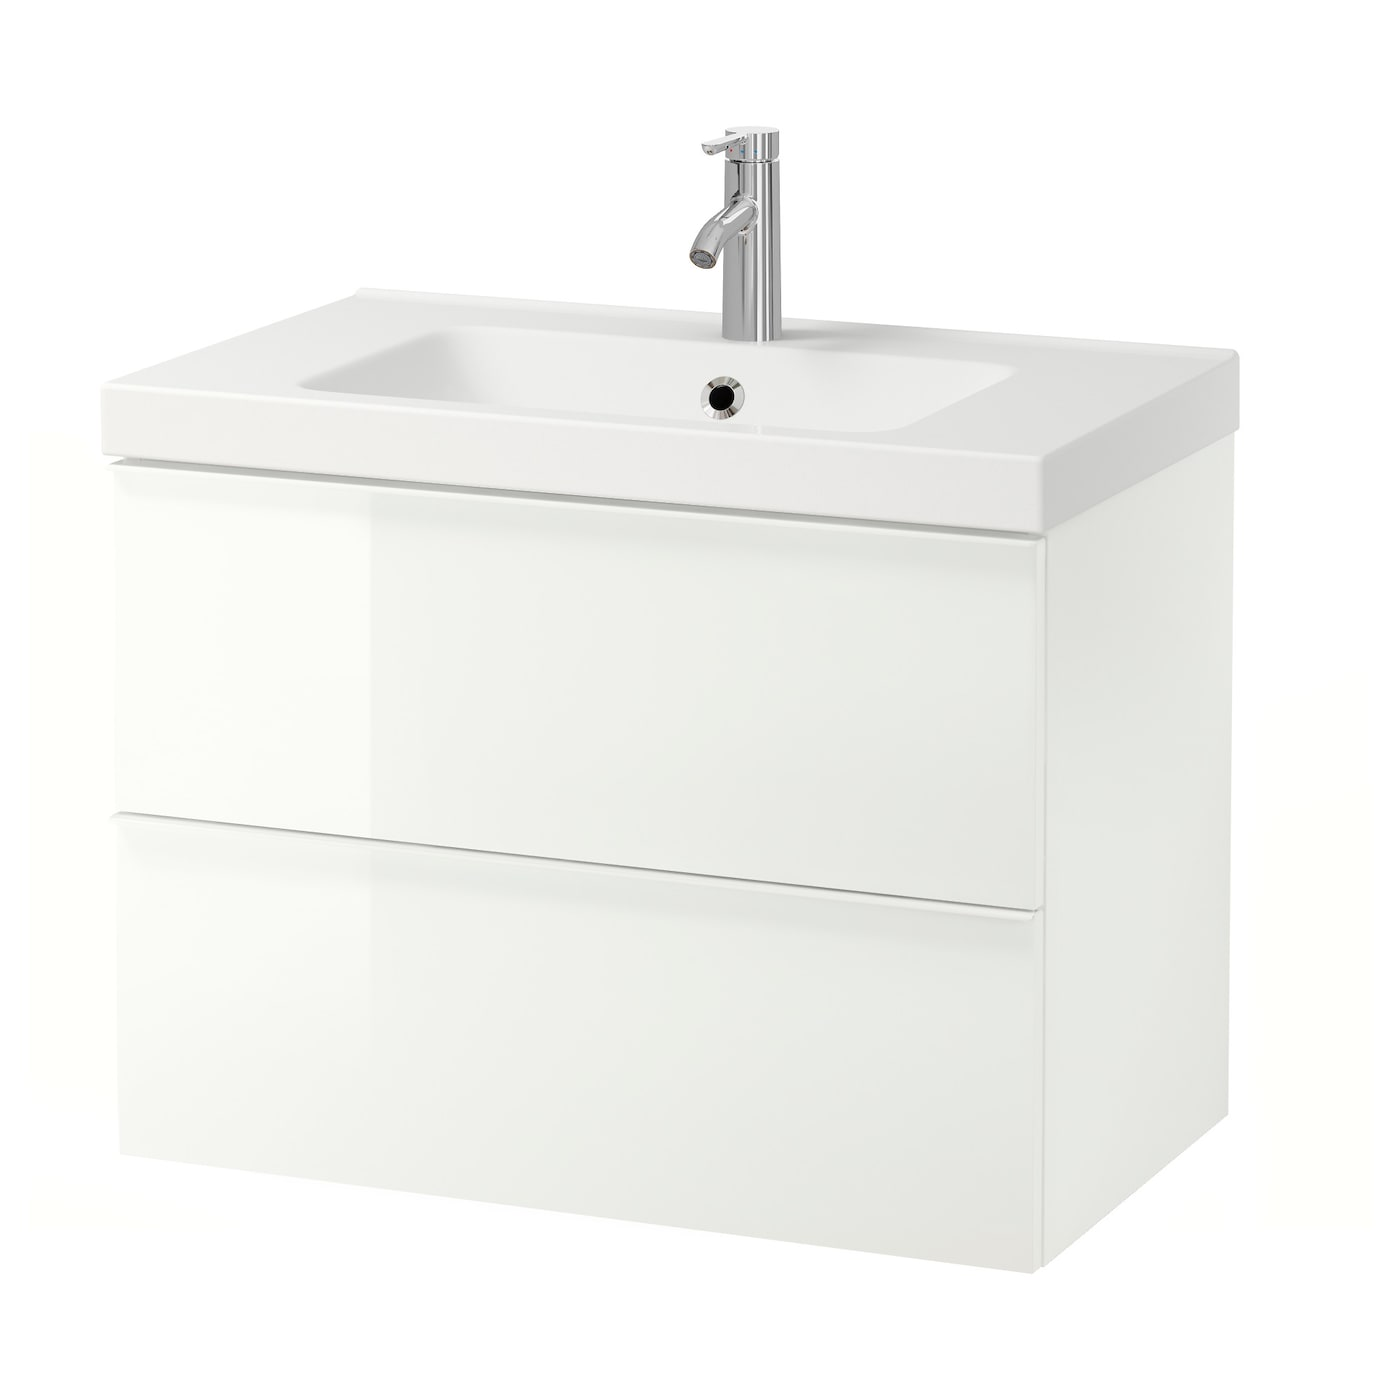 IKEA ODENSVIK/GODMORGON wash-stand with 2 drawers